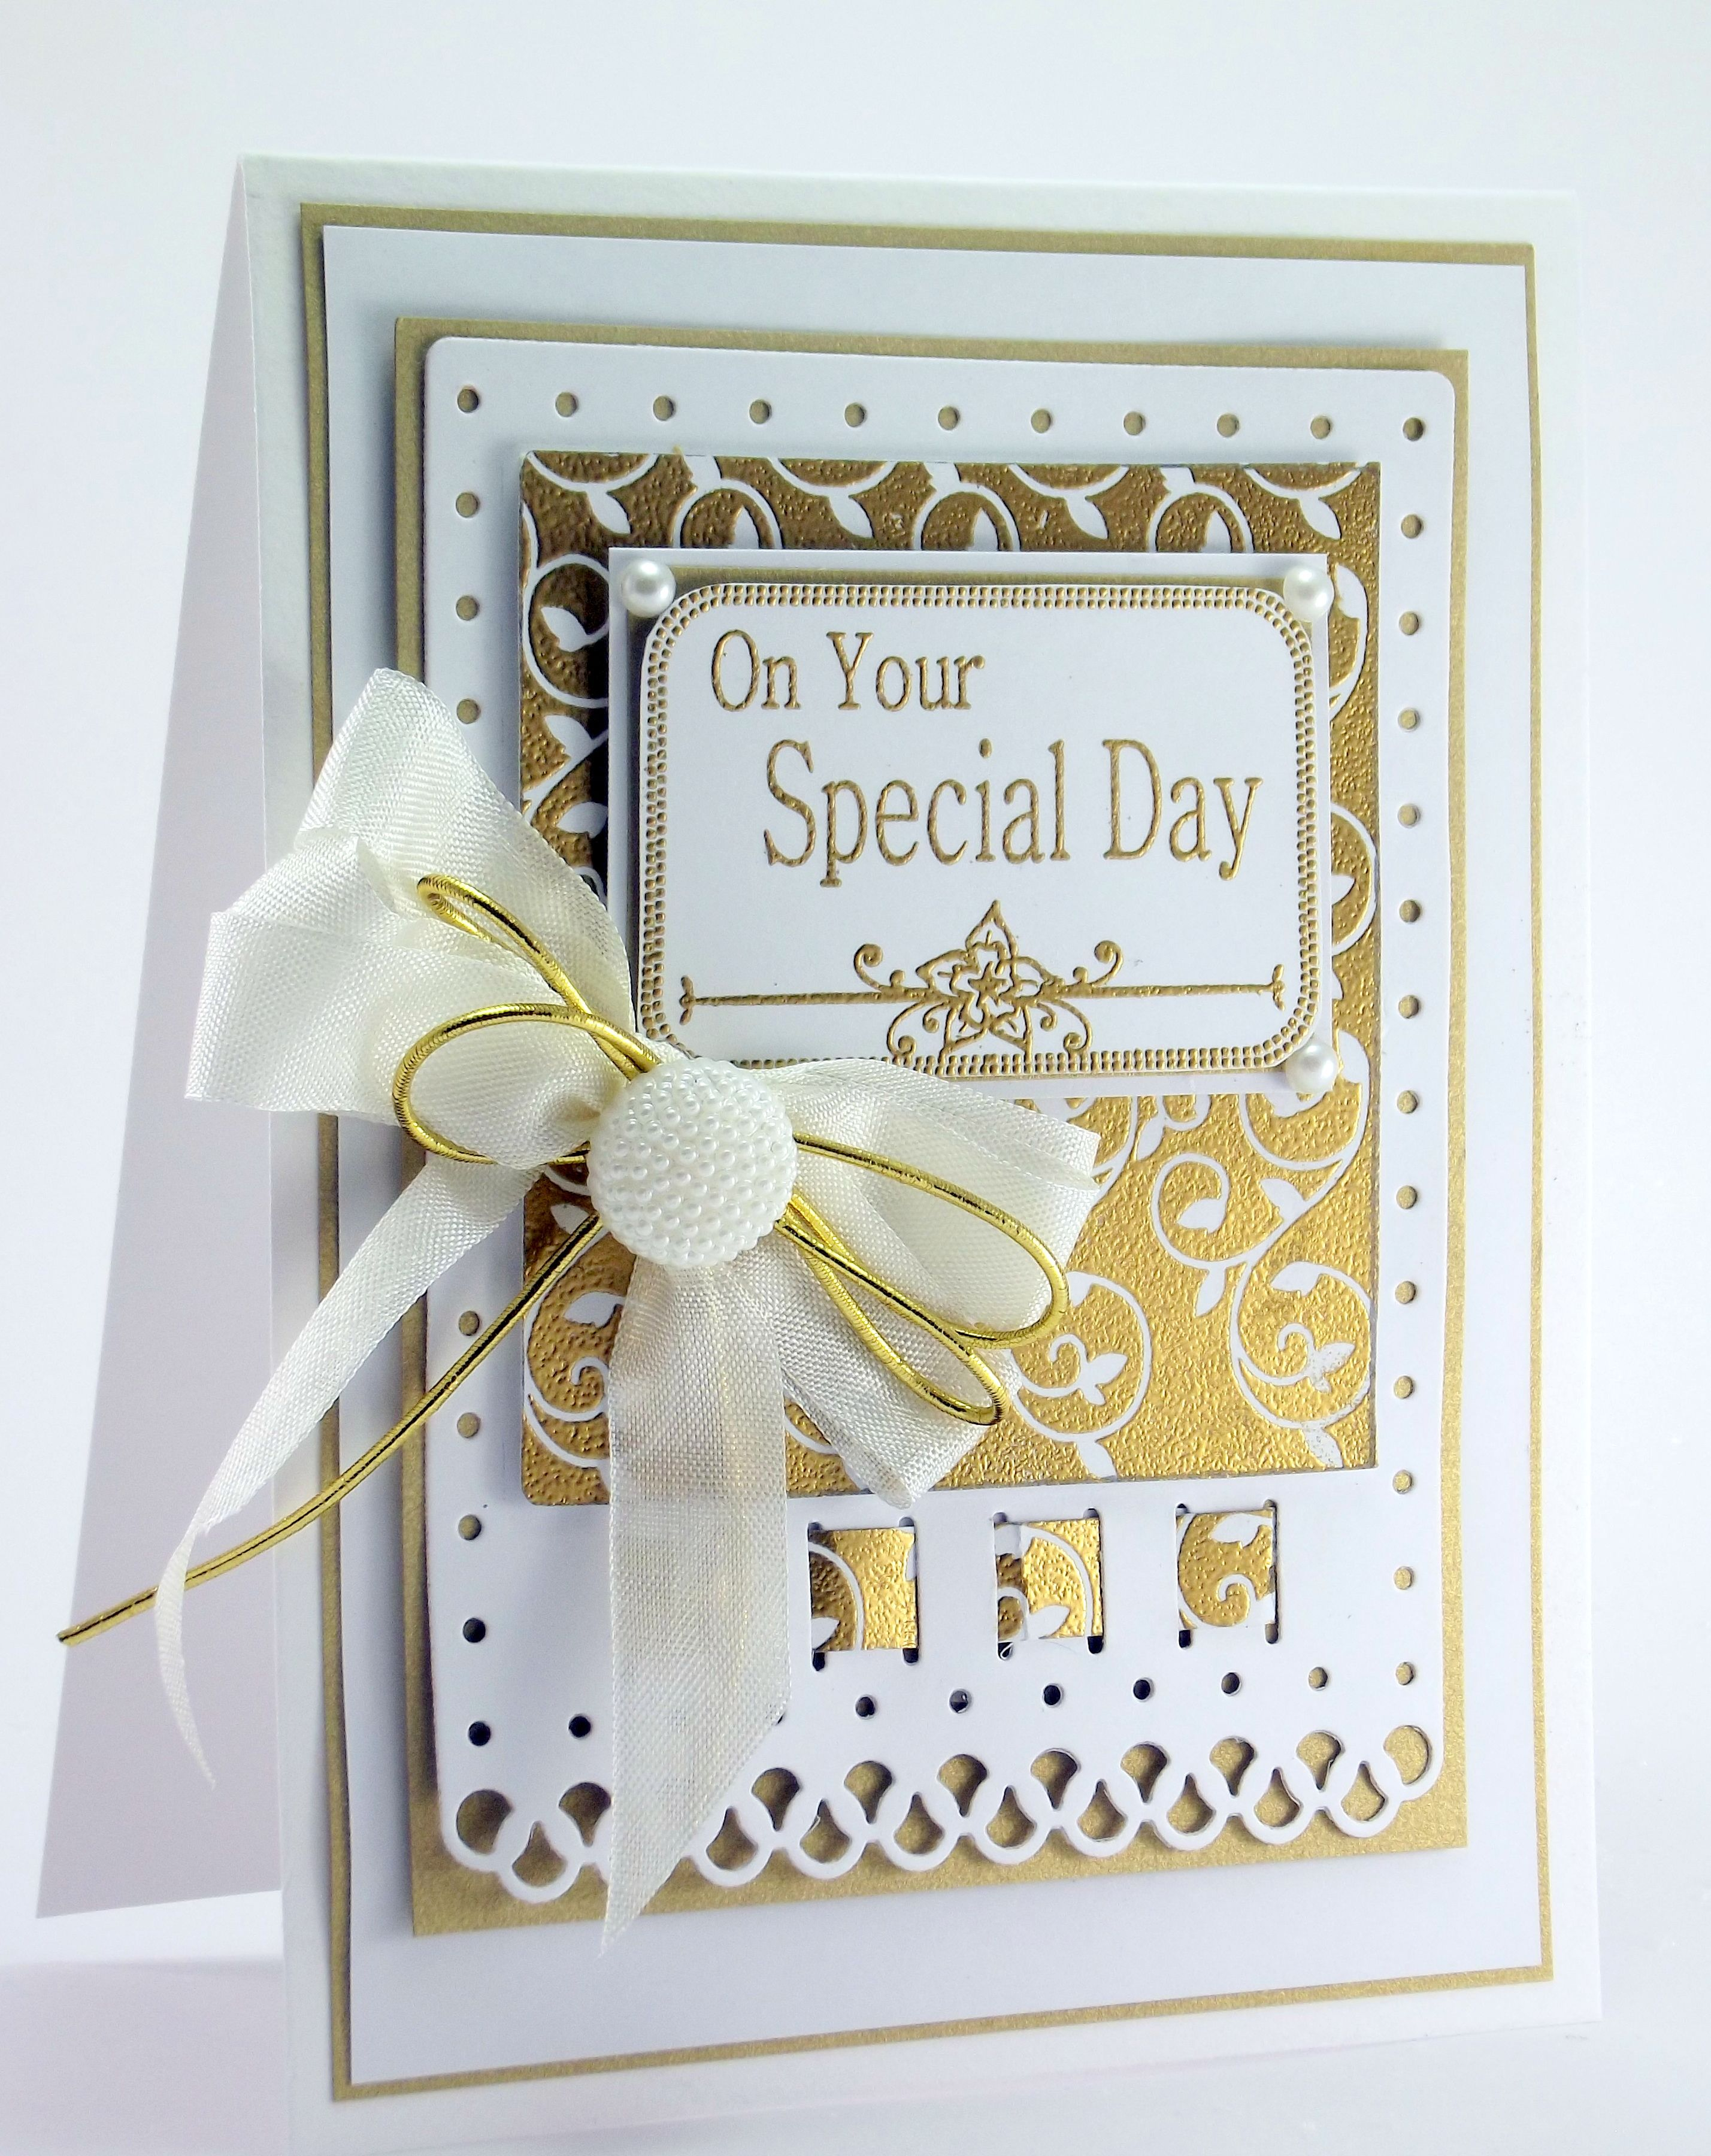 Join John Lockwood For Another Amazing Creative Expressions One Day Special Be Inspi 50th Anniversary Cards Golden Anniversary Cards Wedding Anniversary Cards